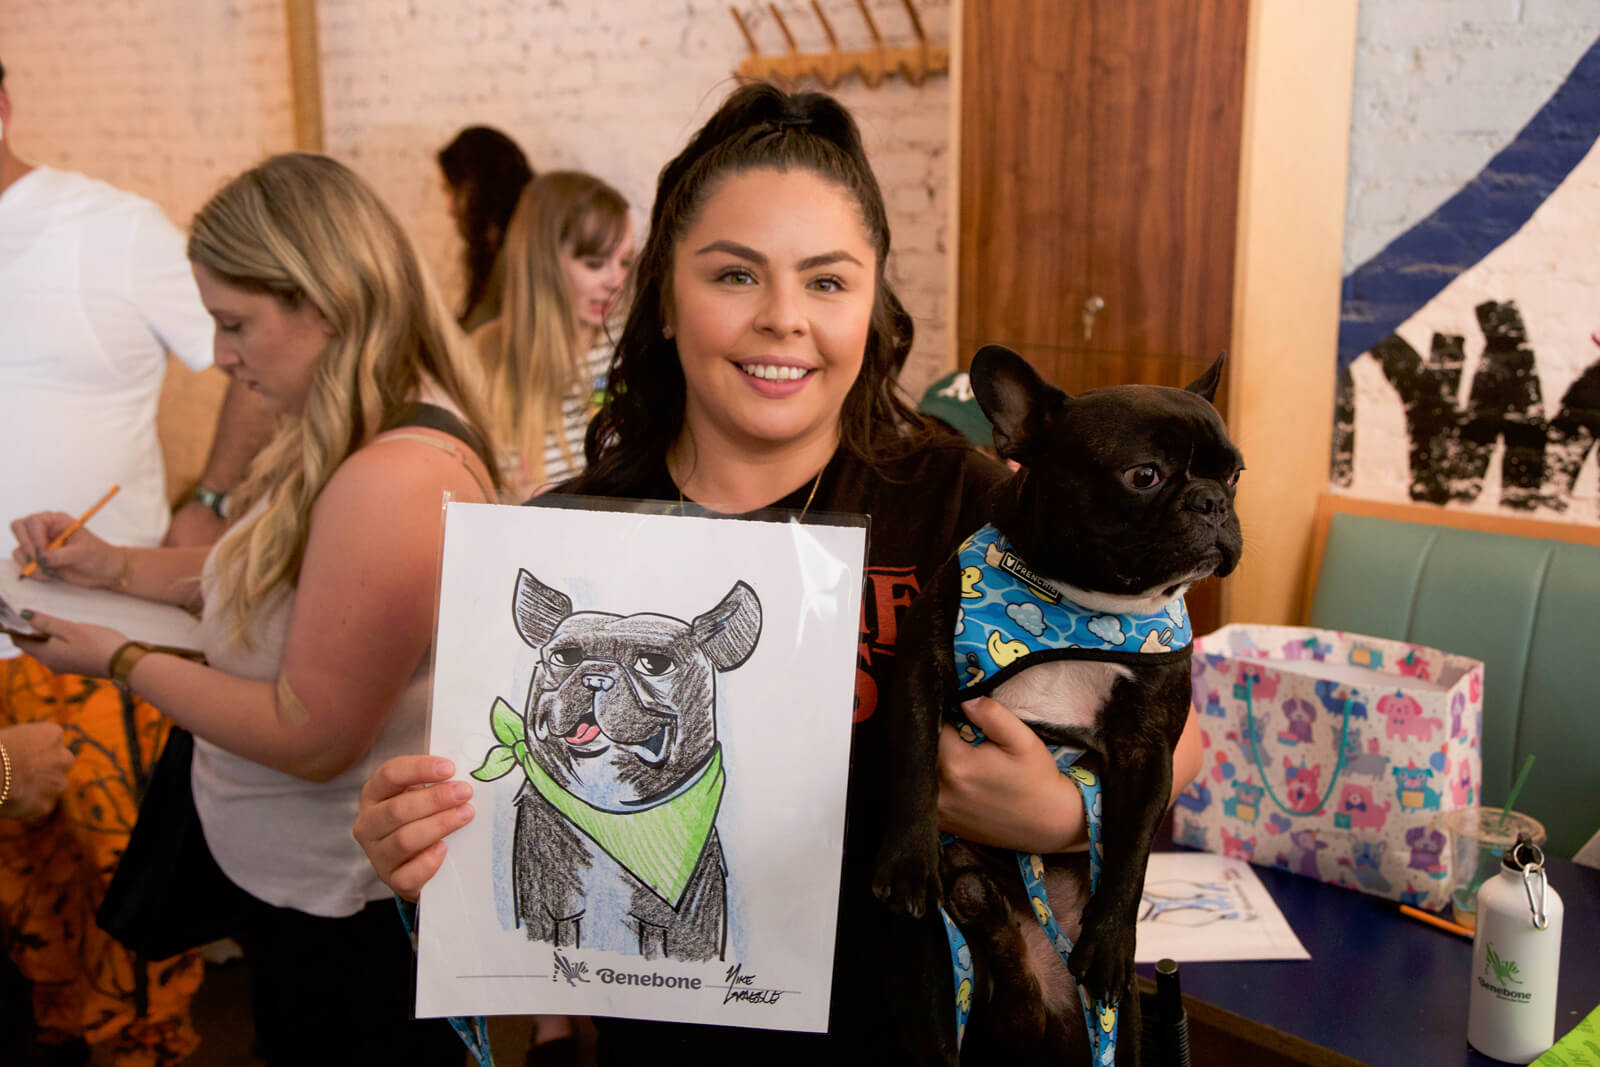 Women holding dog and cartoon drawing of dog